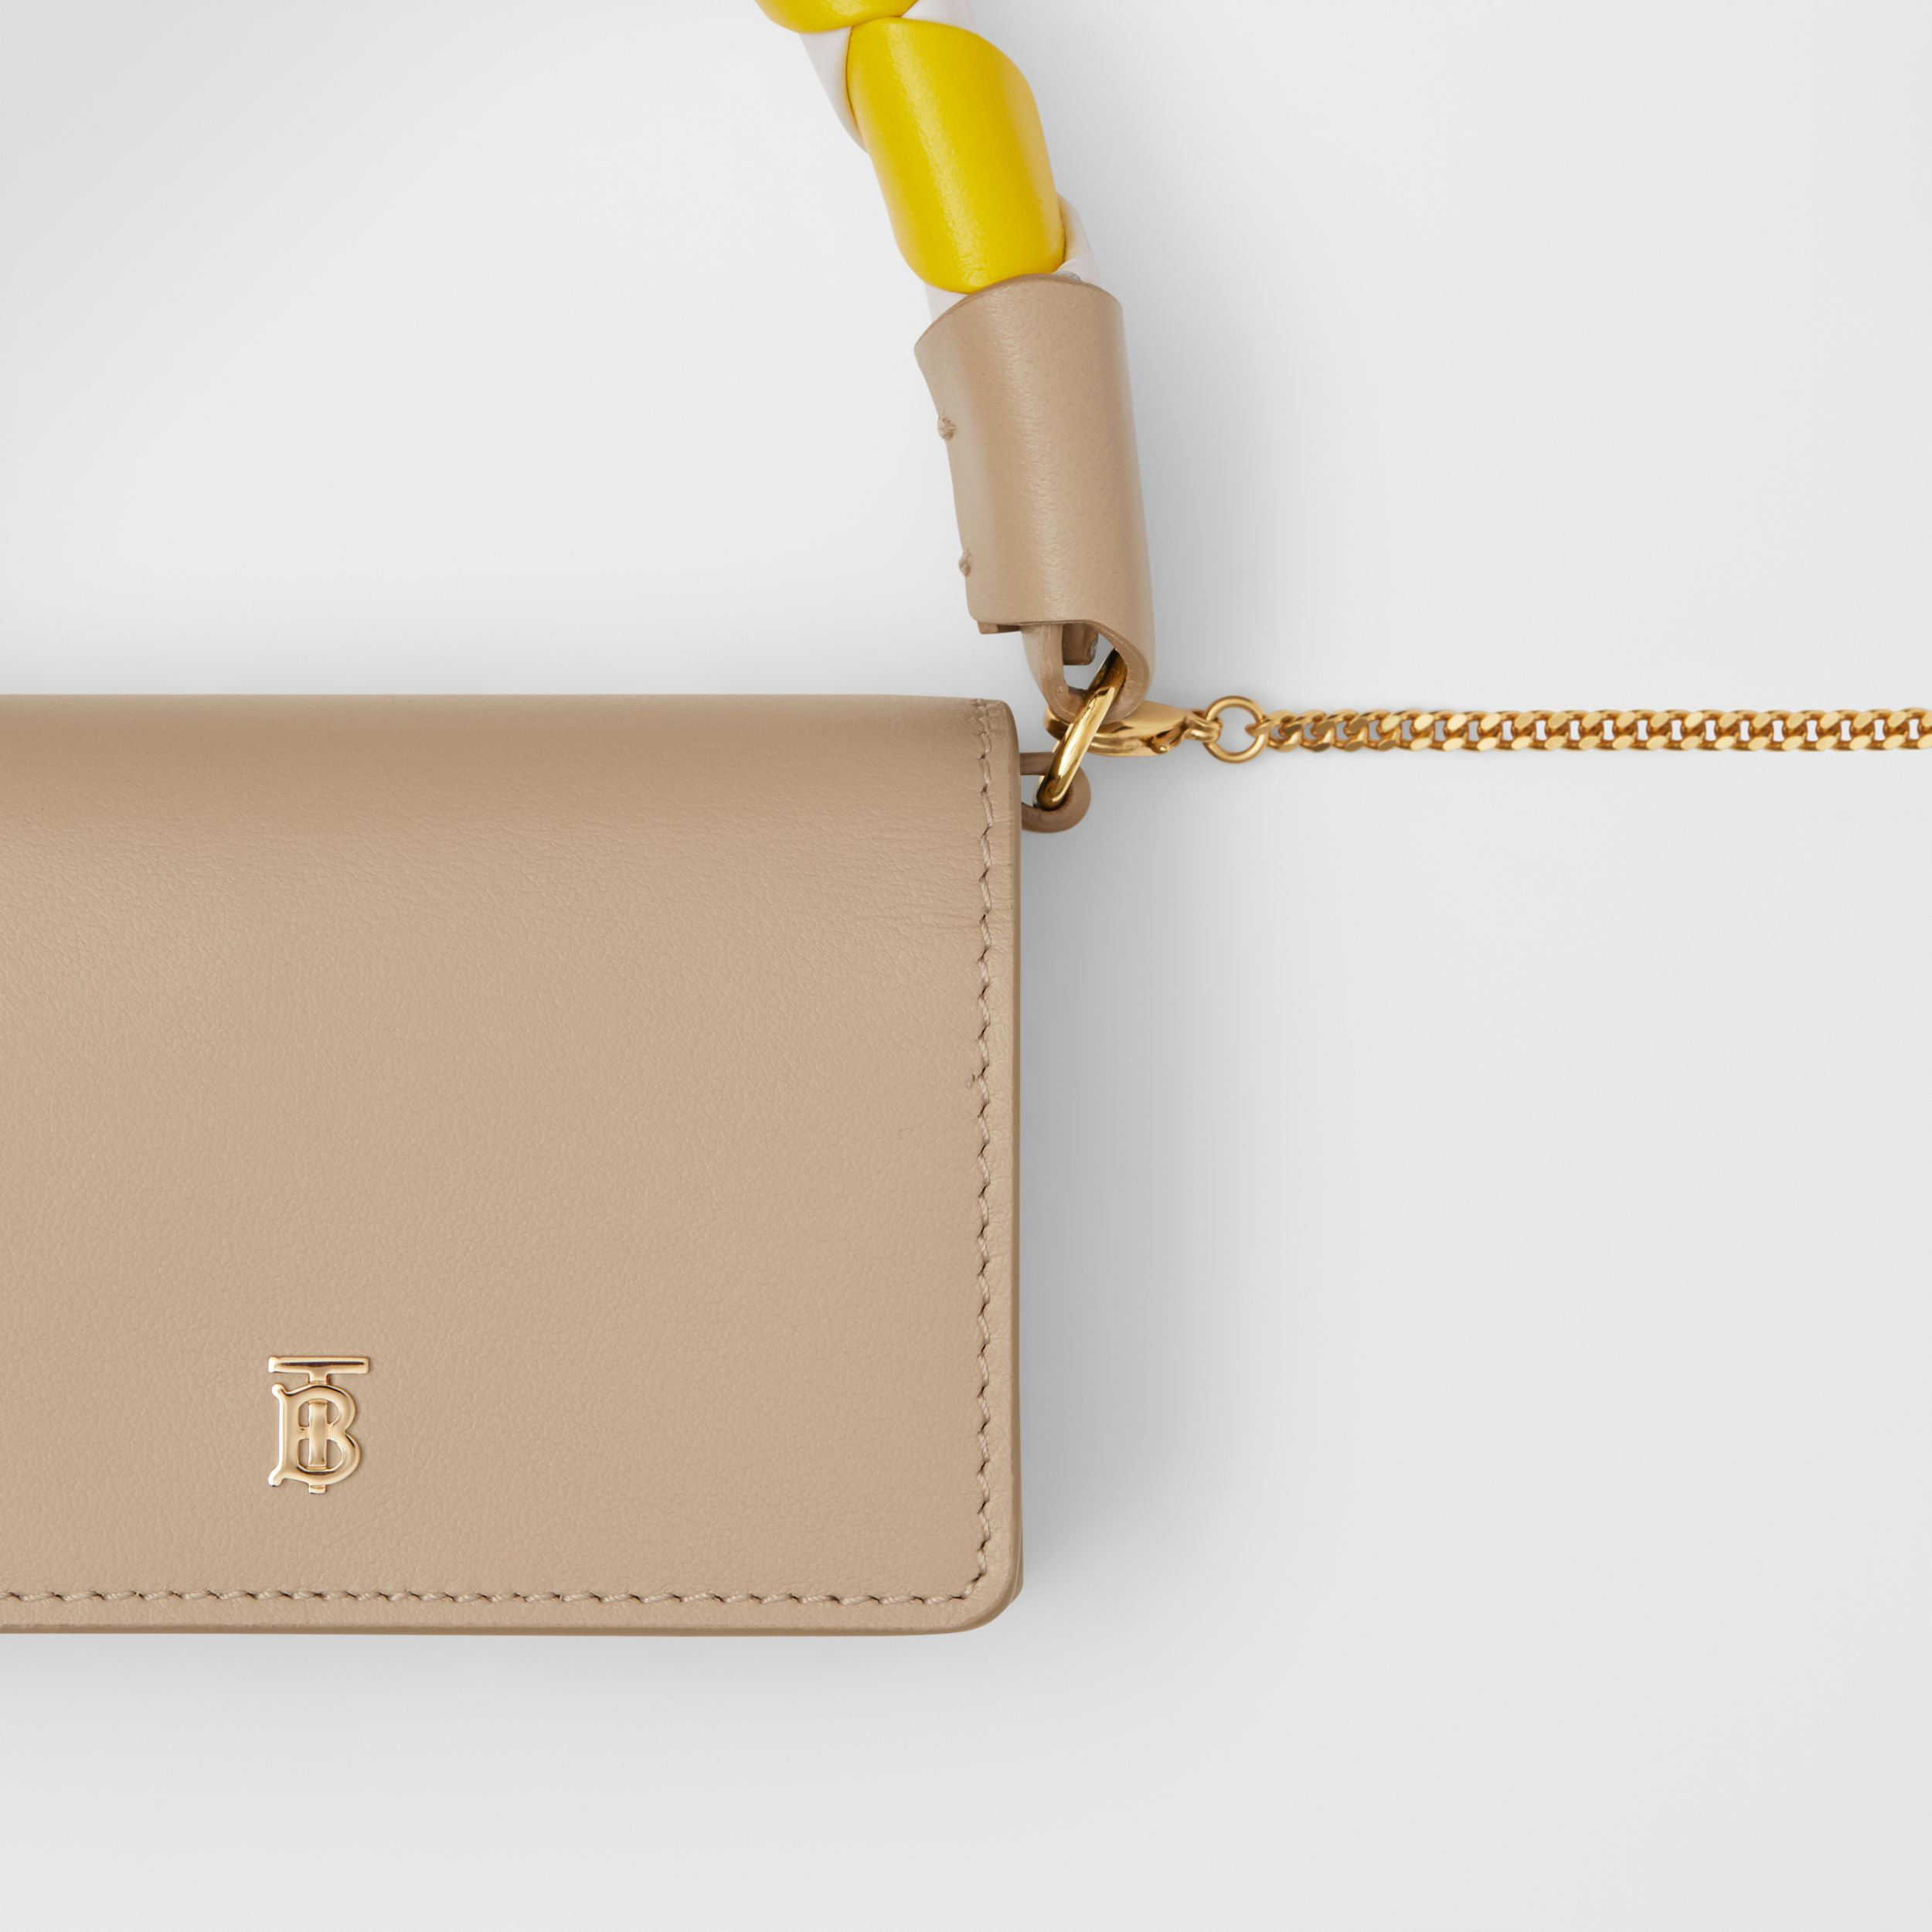 Leather Card Case with Detachable Handle and Strap in Soft Fawn/white/yellow | Burberry - 2